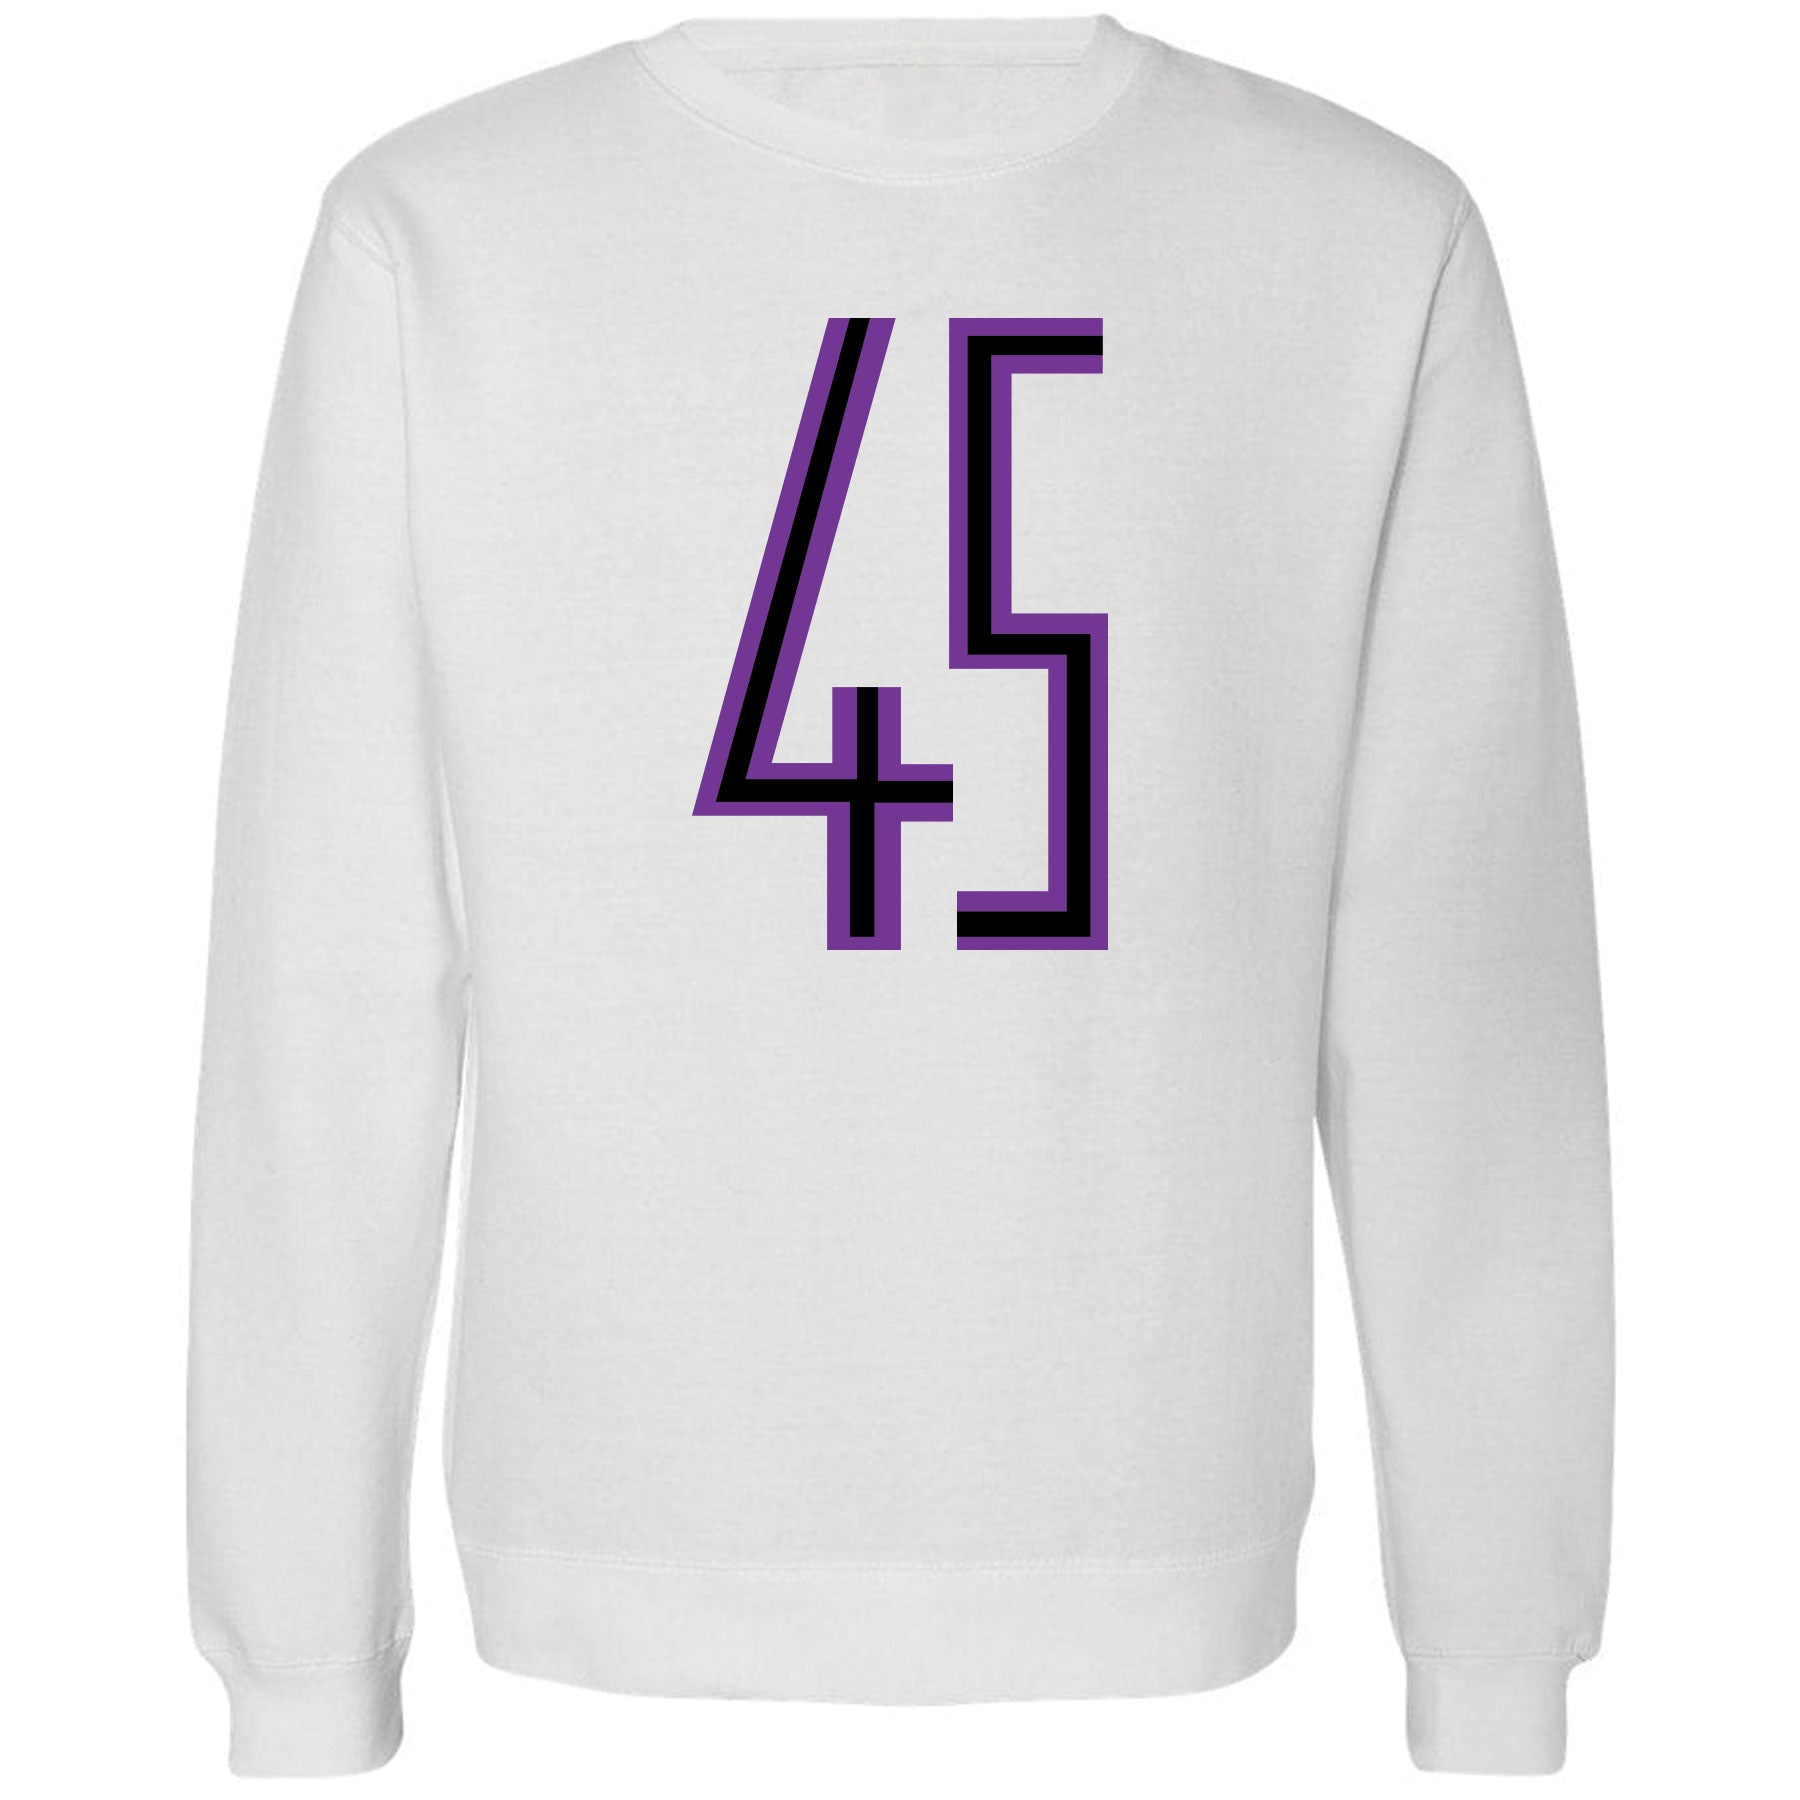 e8d38c6df92bbf ... Printed on the front of the Jordan 11 Concord 45 white sneaker matching  white crewneck sweatshirt